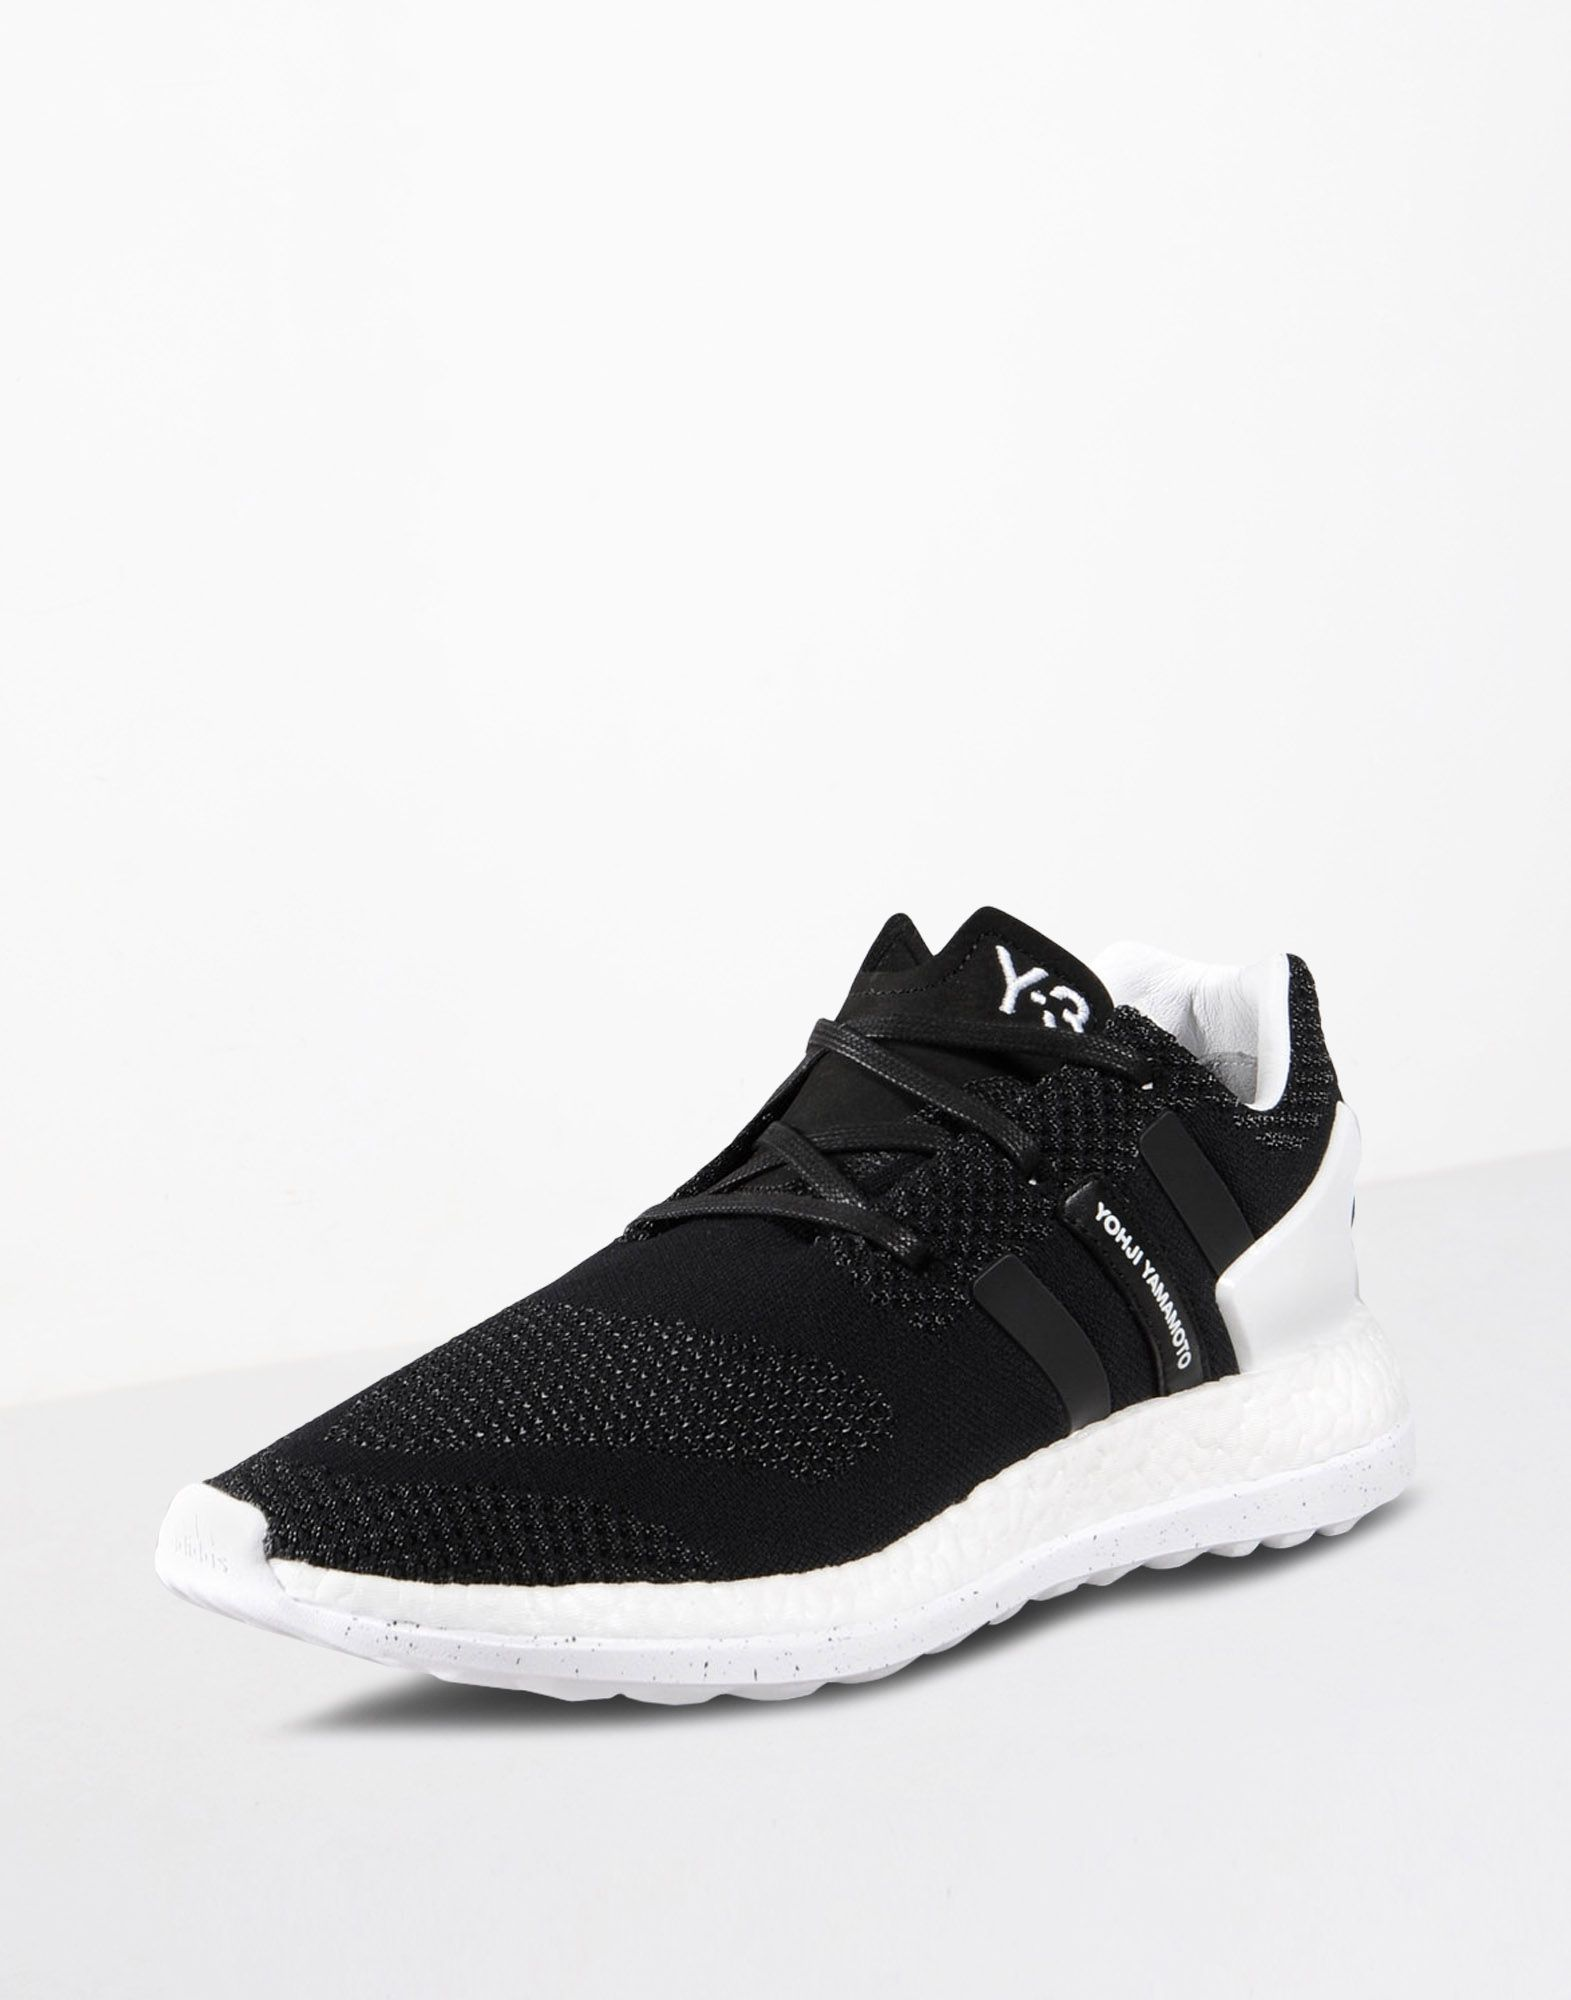 Adidas Pure Boost Knit